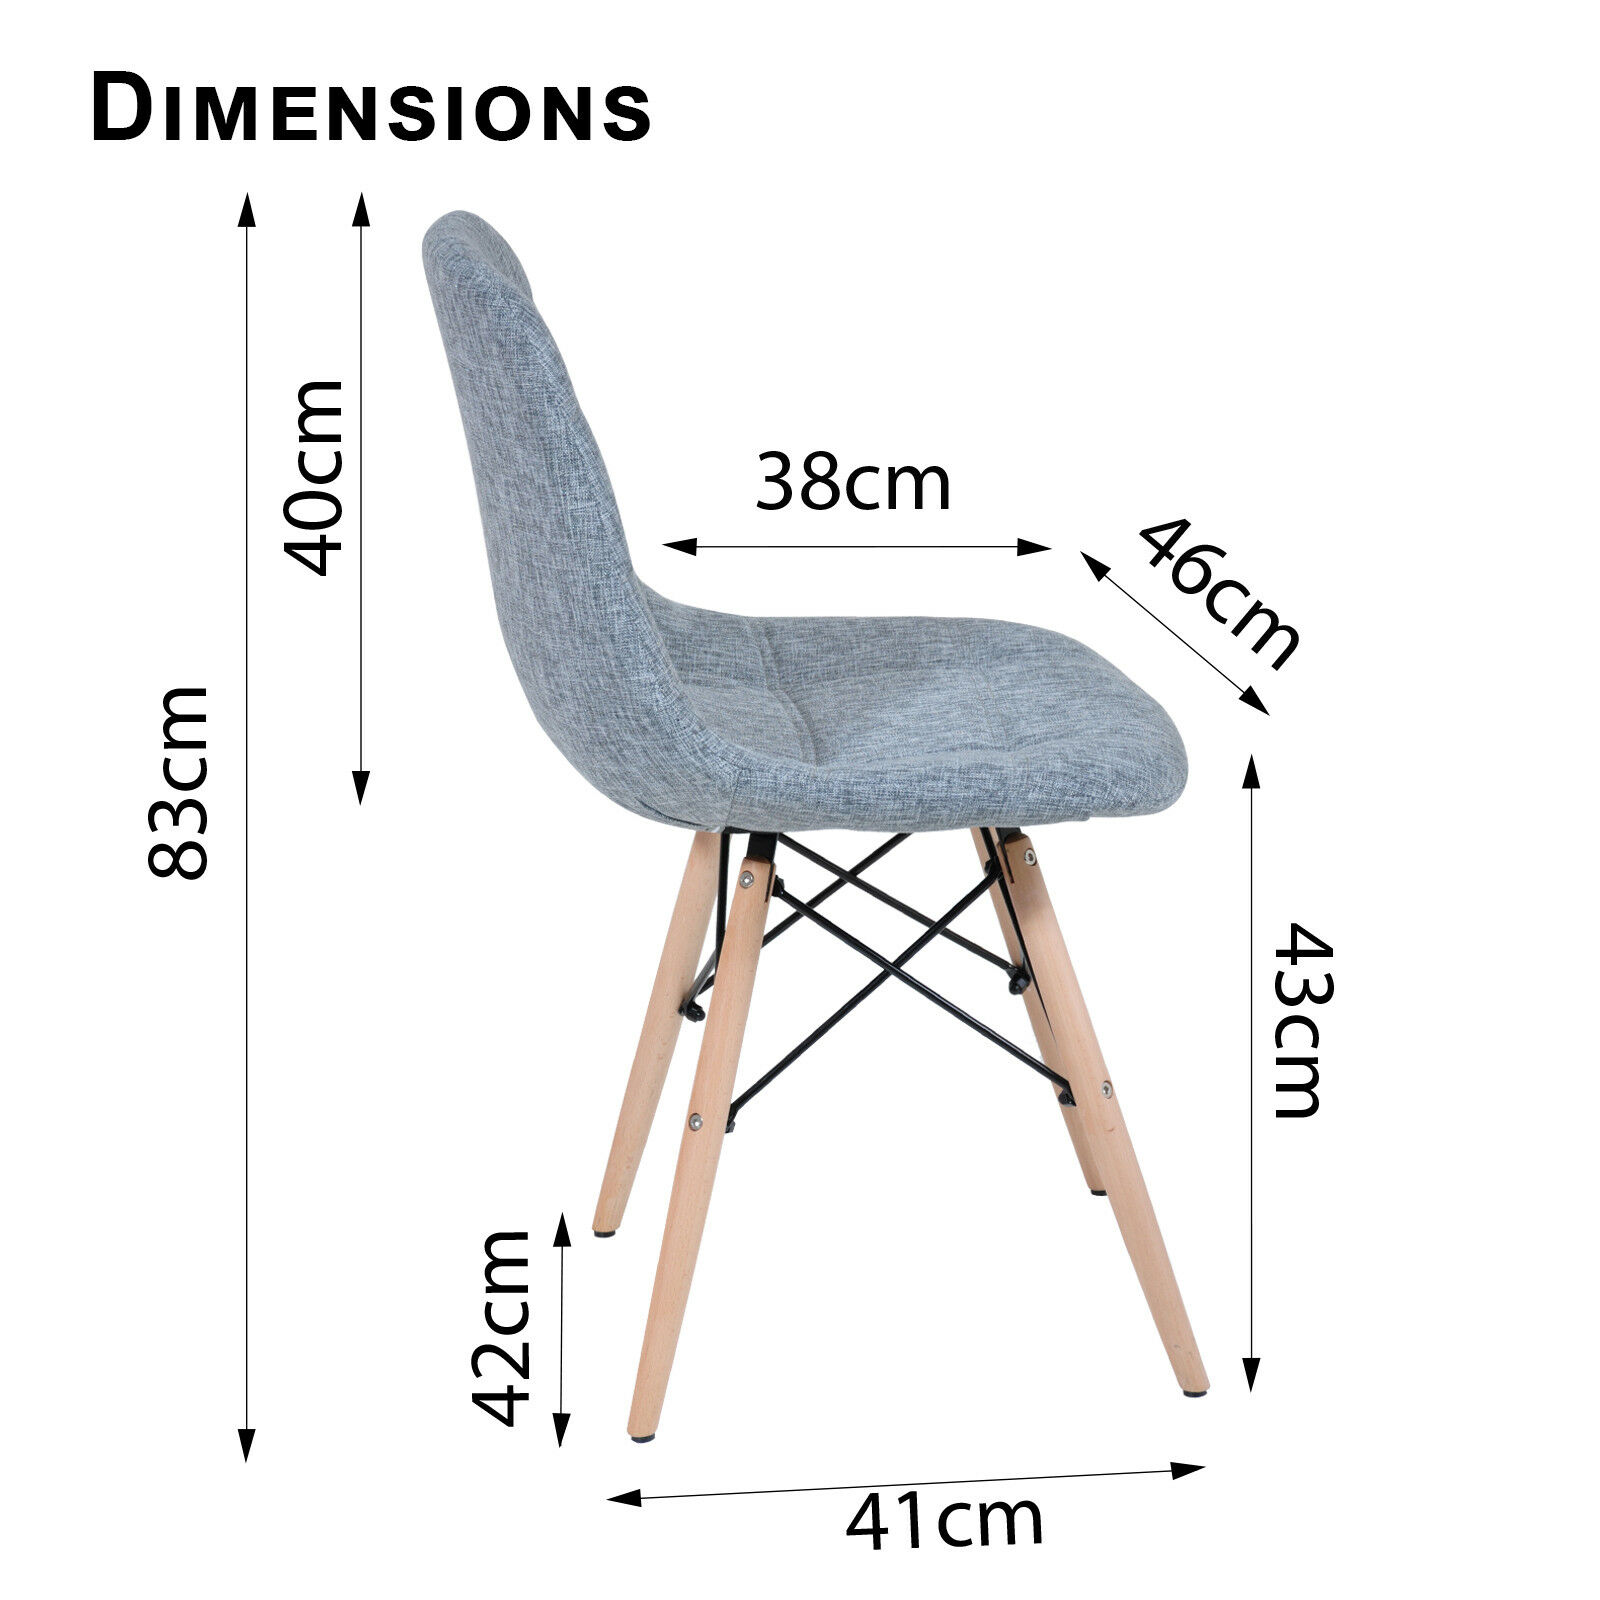 12 x Replica Eames Ellen Linen Fabric Dining Chair Grey  : Eames Ellen Grey Dimensions from www.ebay.com.au size 1600 x 1600 jpeg 532kB